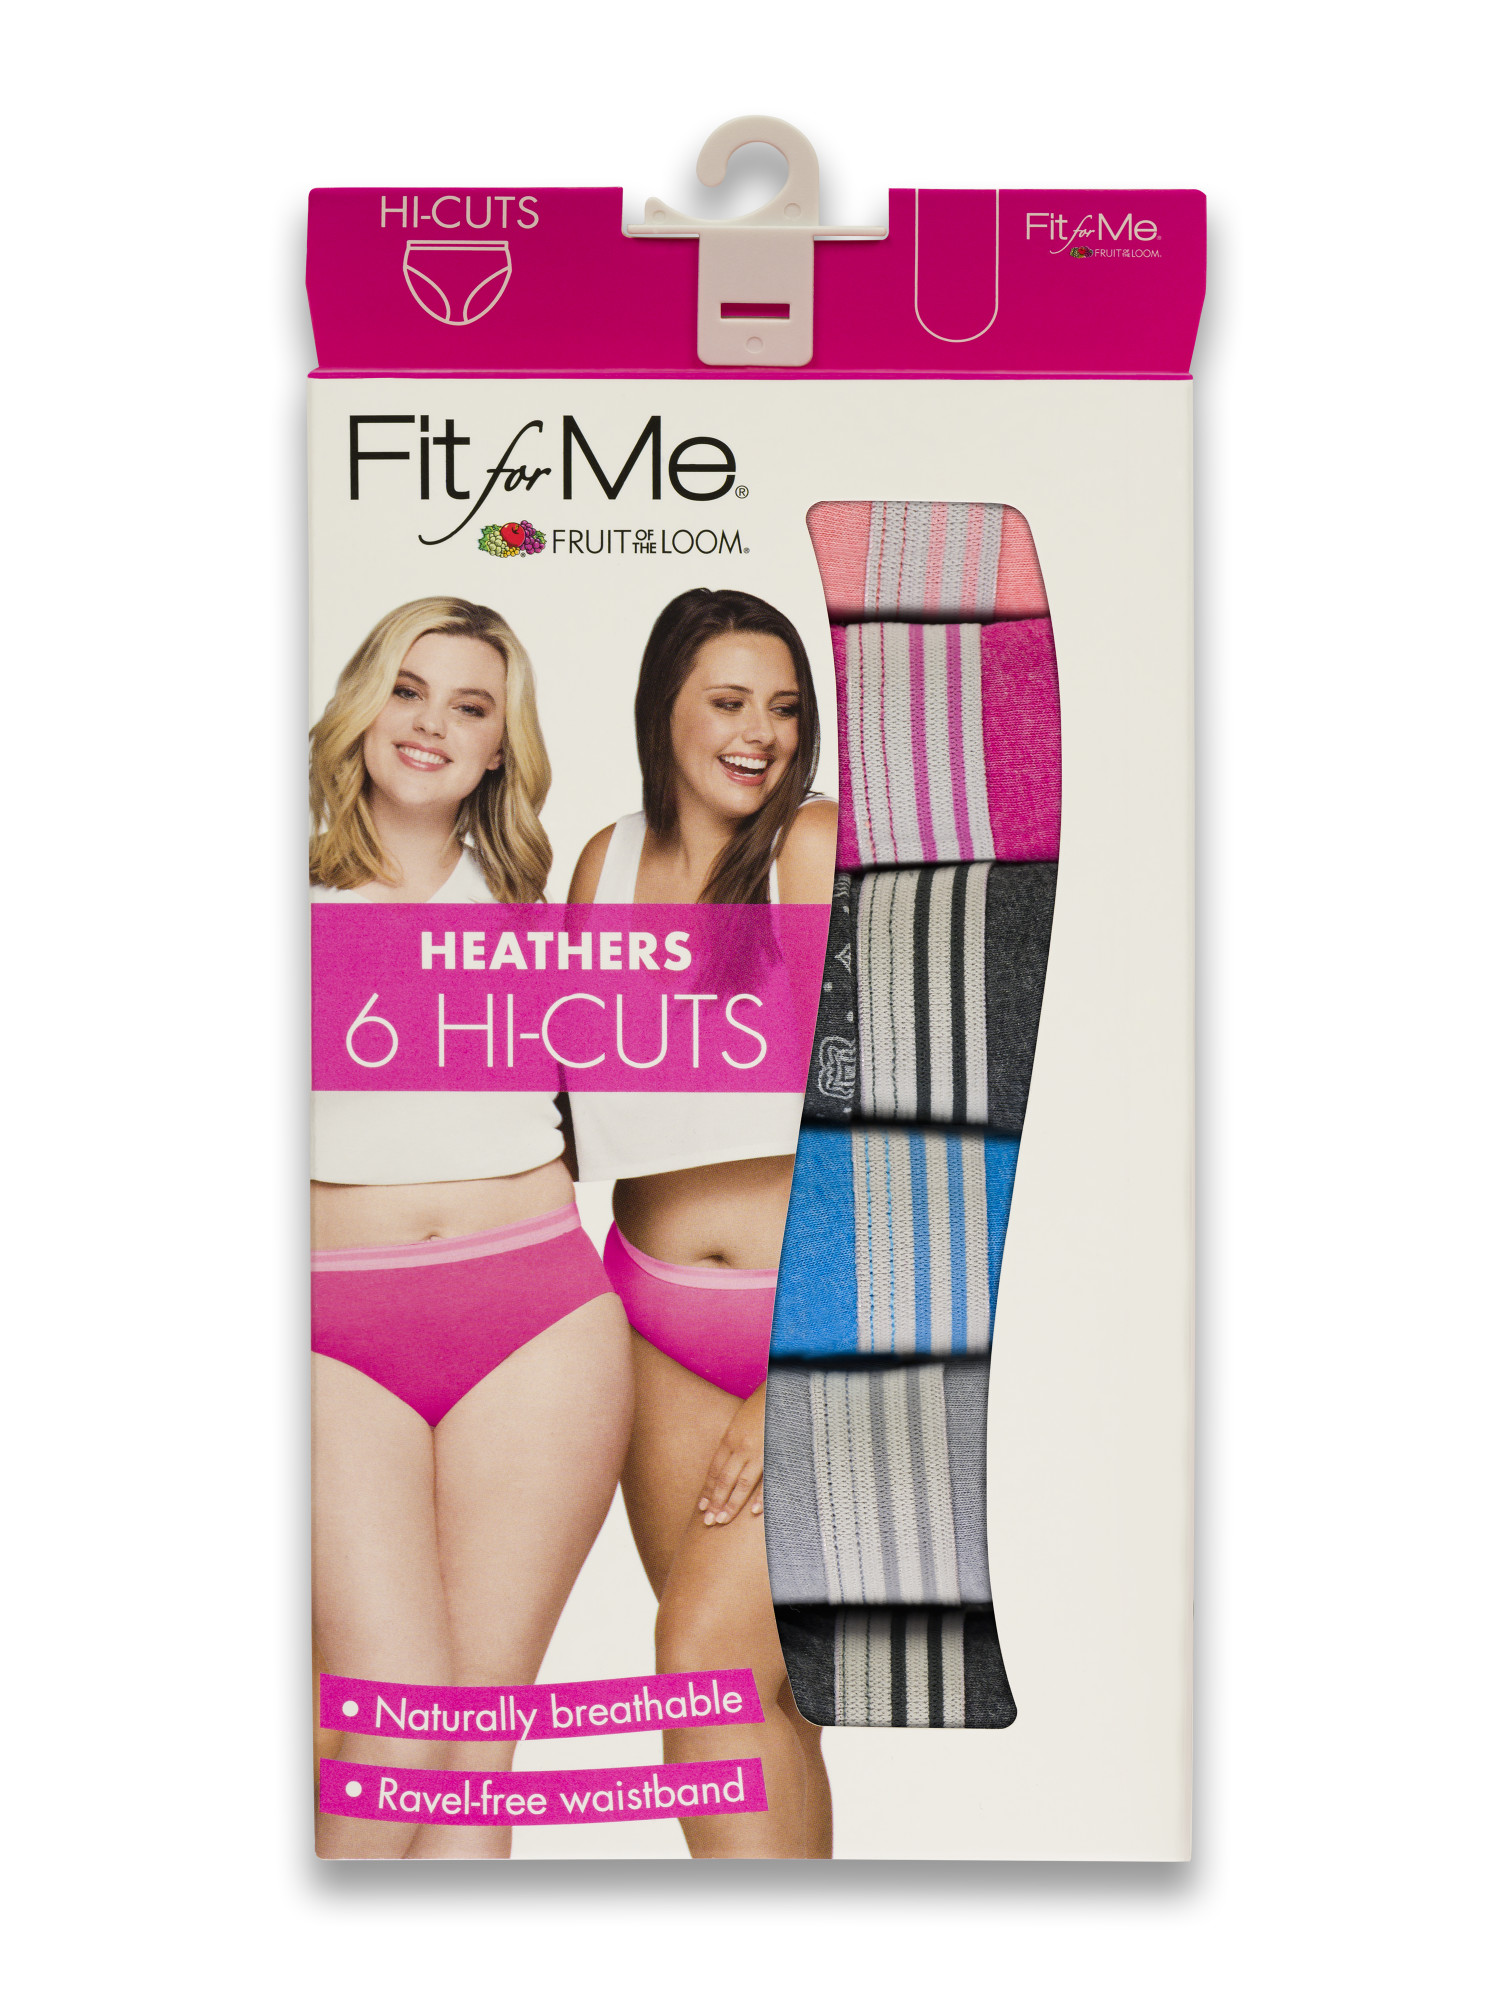 c2a2c252dffa Fit for Me by Fruit of the Loom - Women's Plus Heather Assorted Cotton Hi-Cut  Panties, 6 Pack - Walmart.com